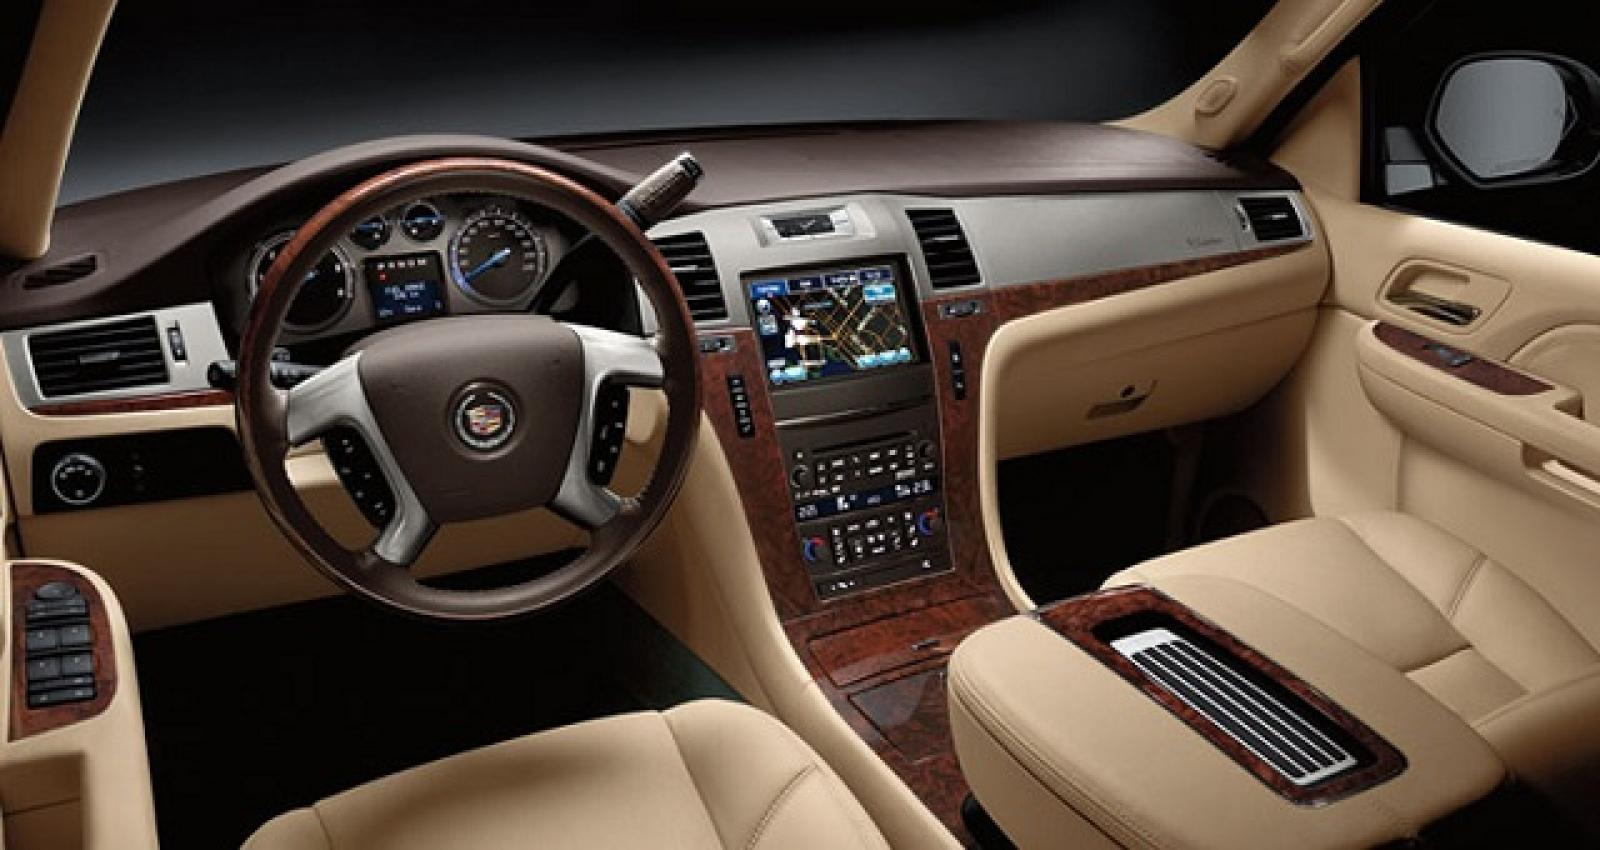 prices mountain dealer trucks news srx and s inventory pictures cars in u view cadillac world location ca reviews change